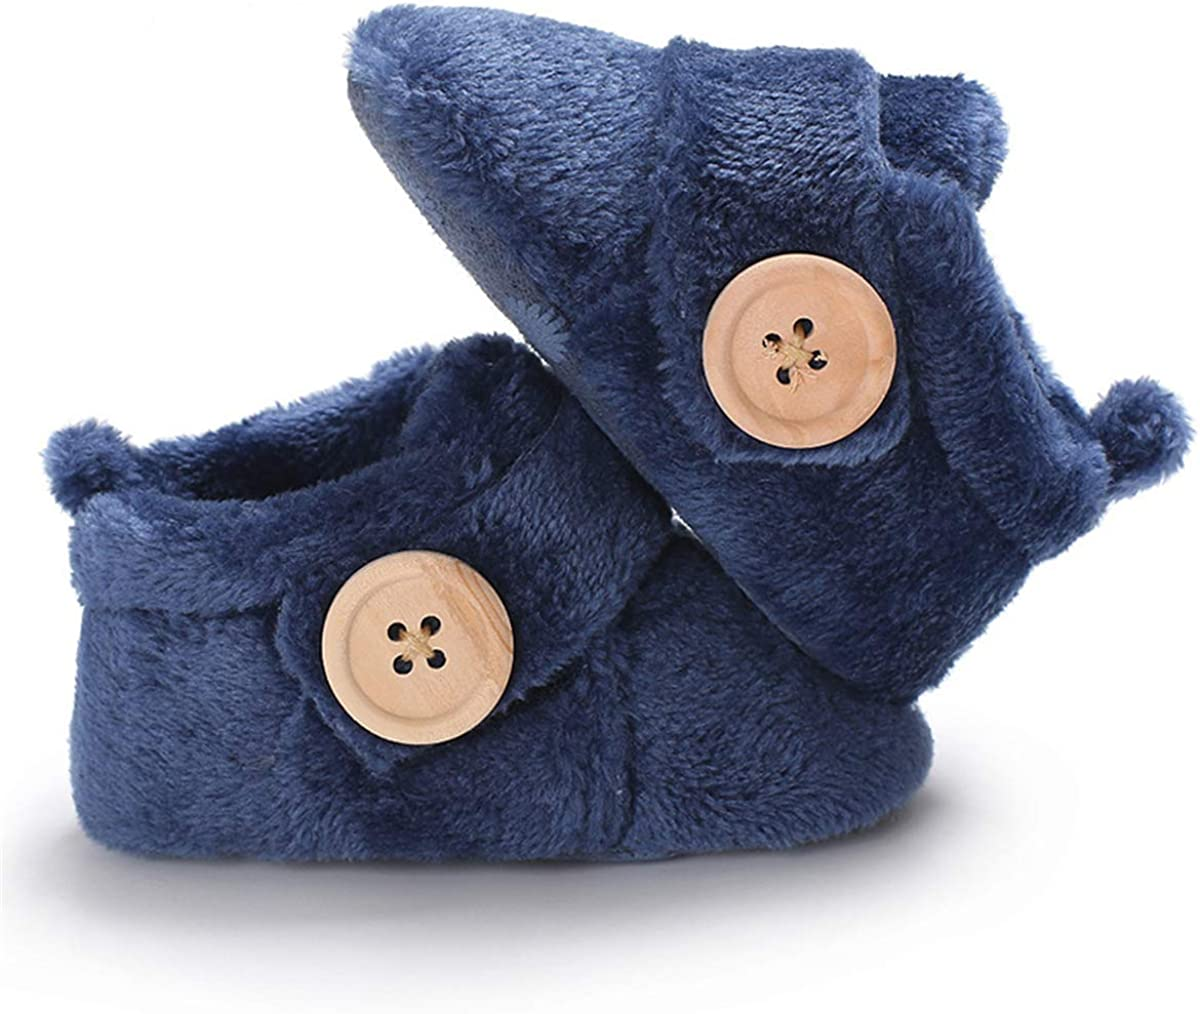 BENHERO Baby Newborn Crib Cozy Fleece Winter Booties Non Skid Soft Sole Shoes Warm Winter Socks